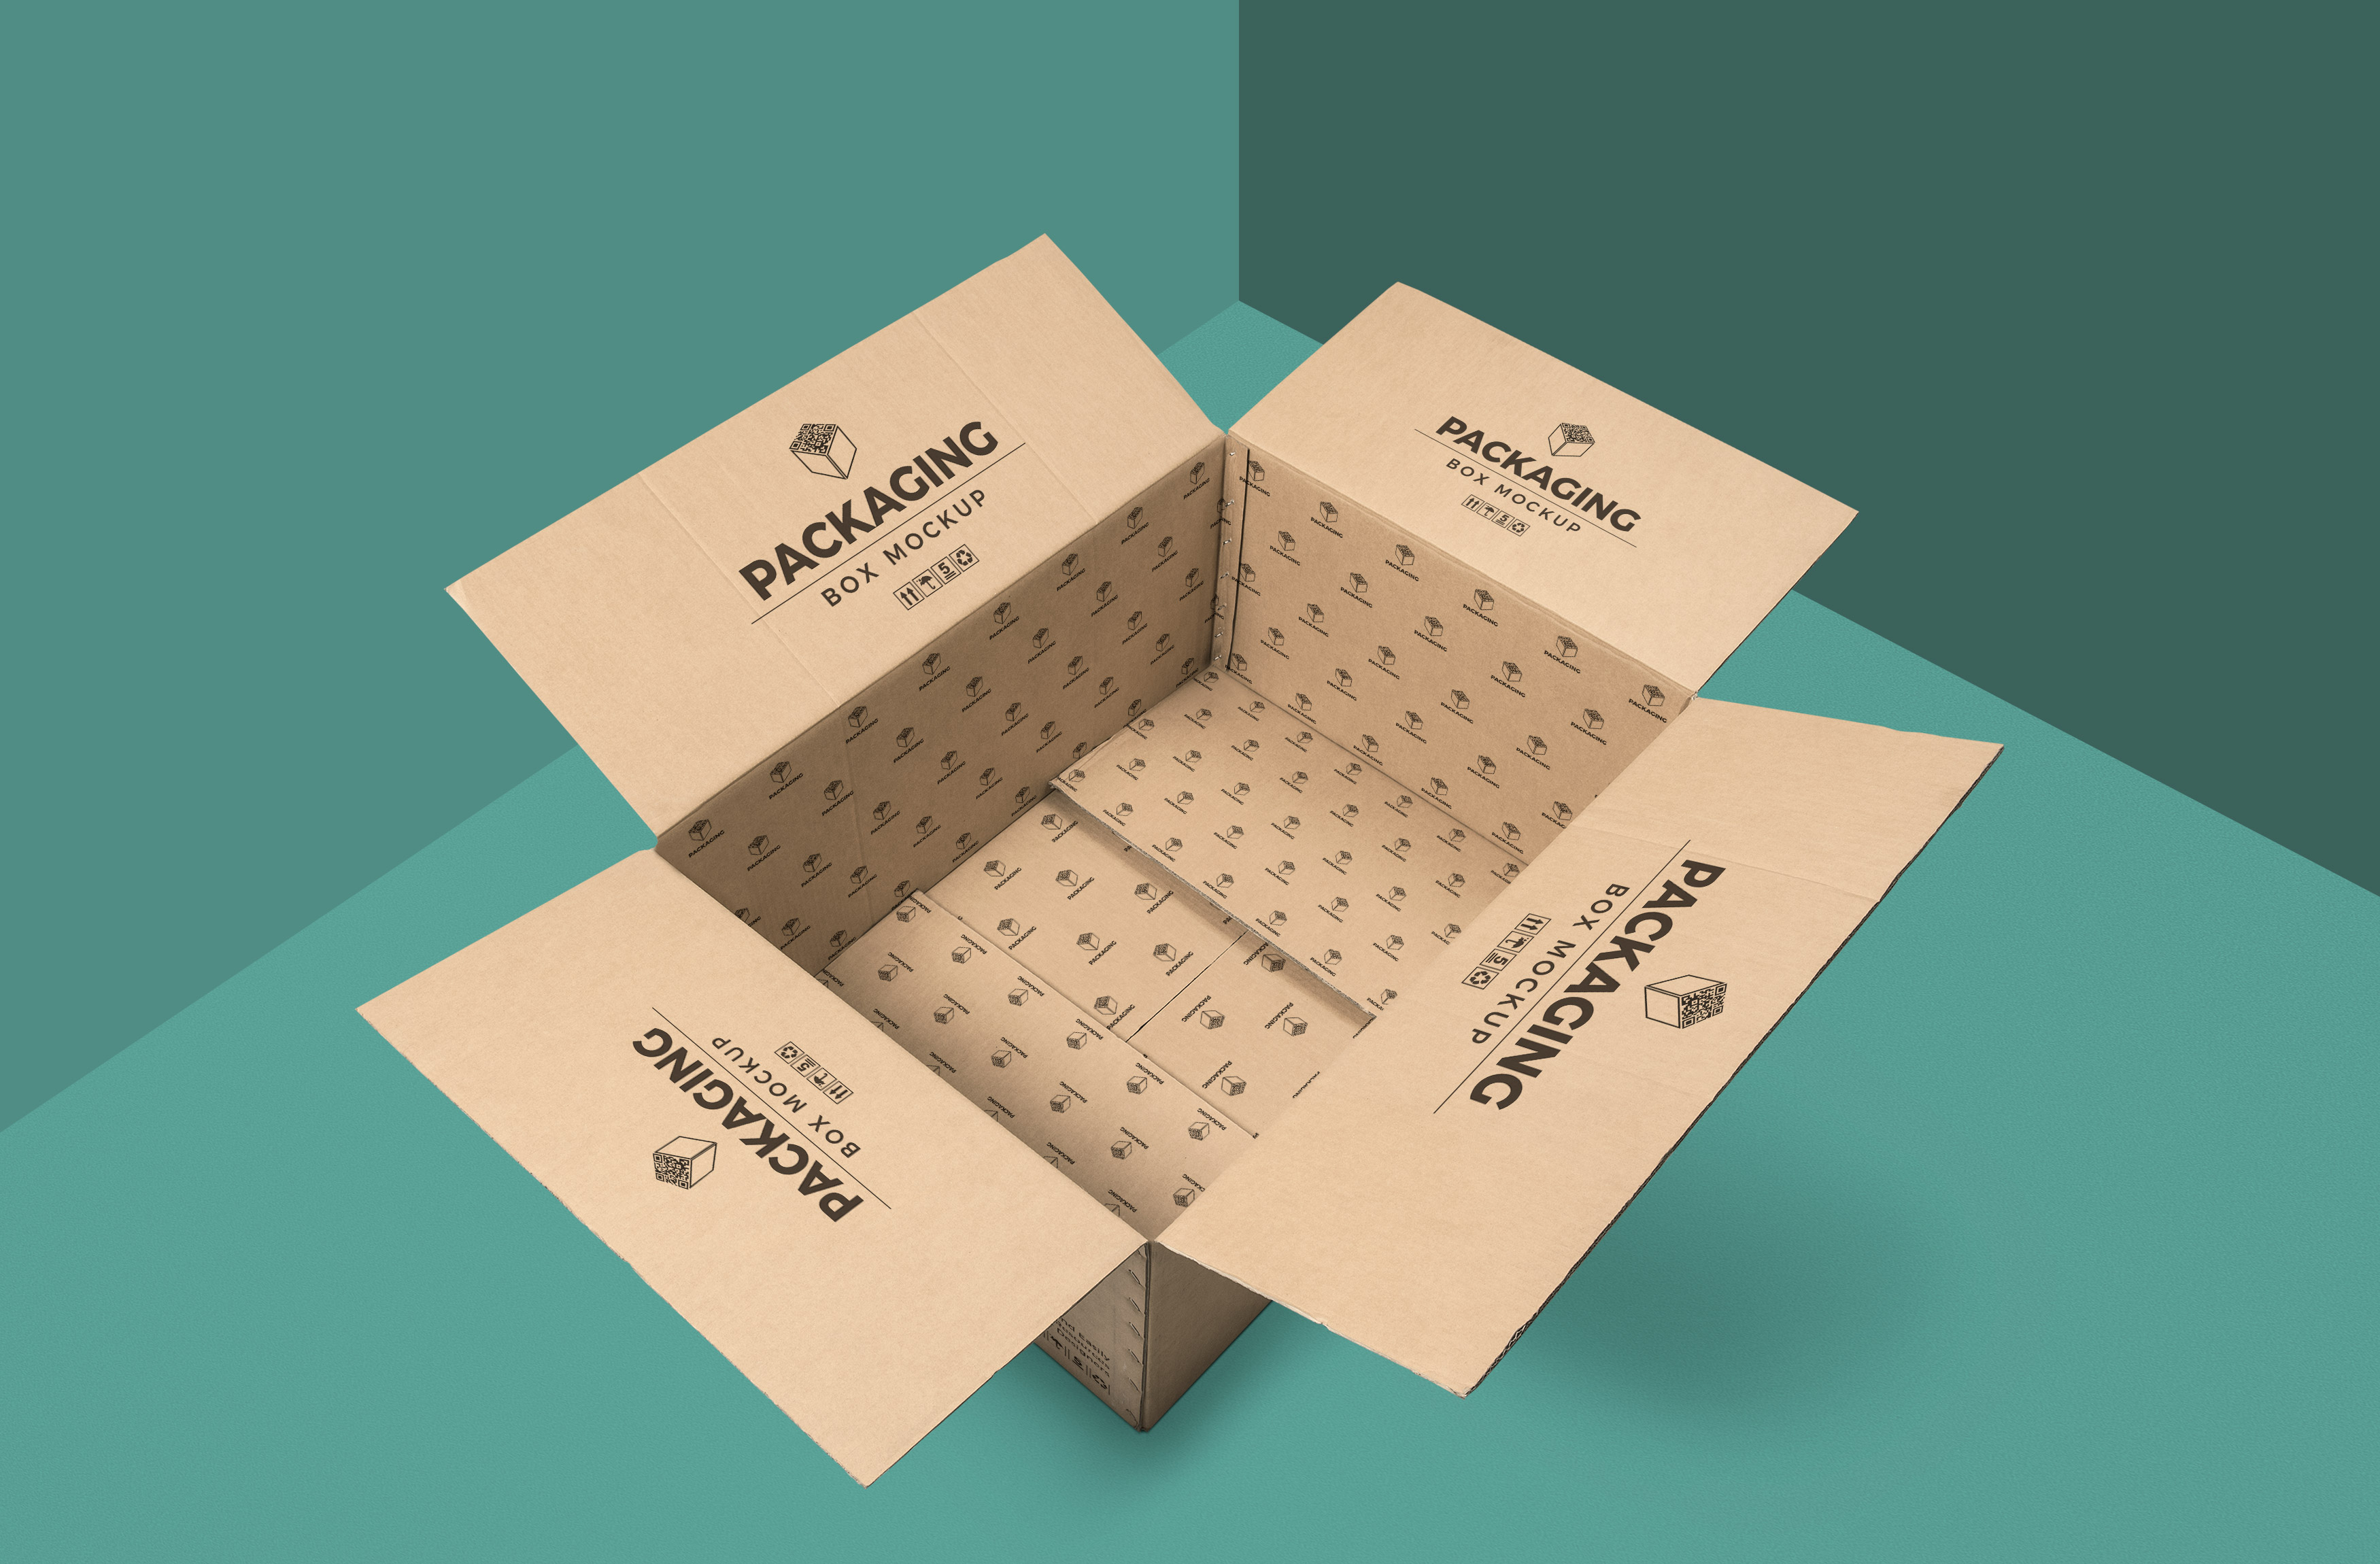 packaging-box-mockup-bonus-6.jpg